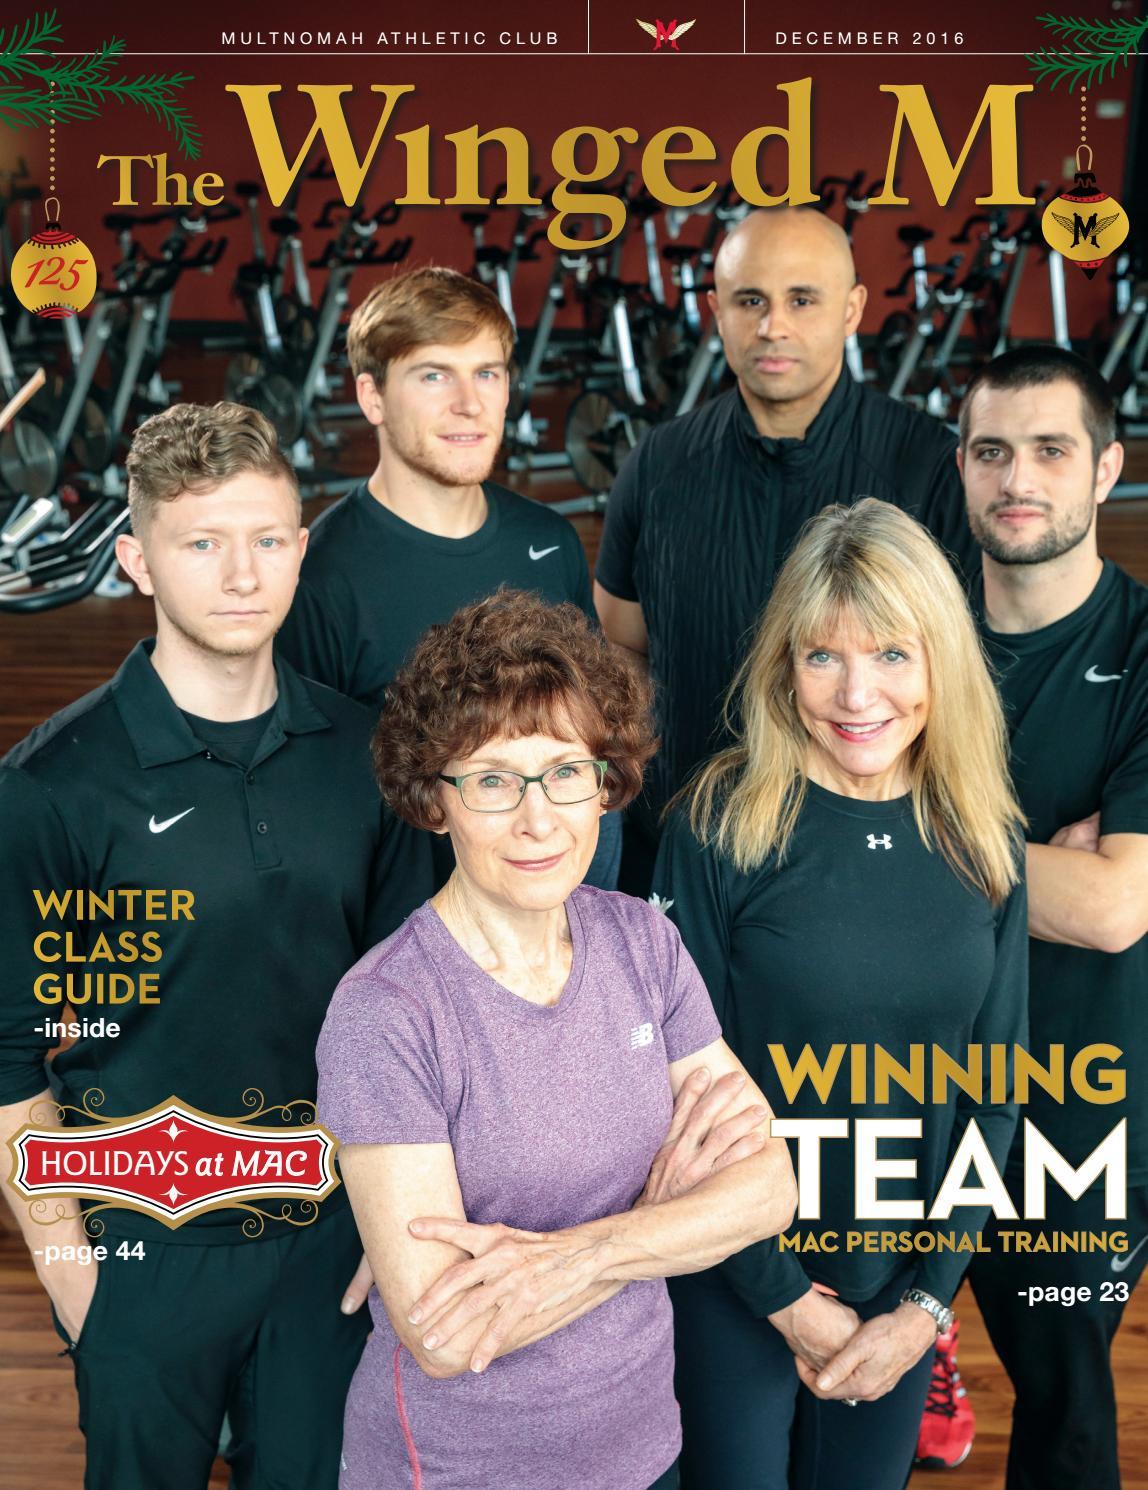 The Winged M December 2016 By Multnomah Athletic Club Issuu